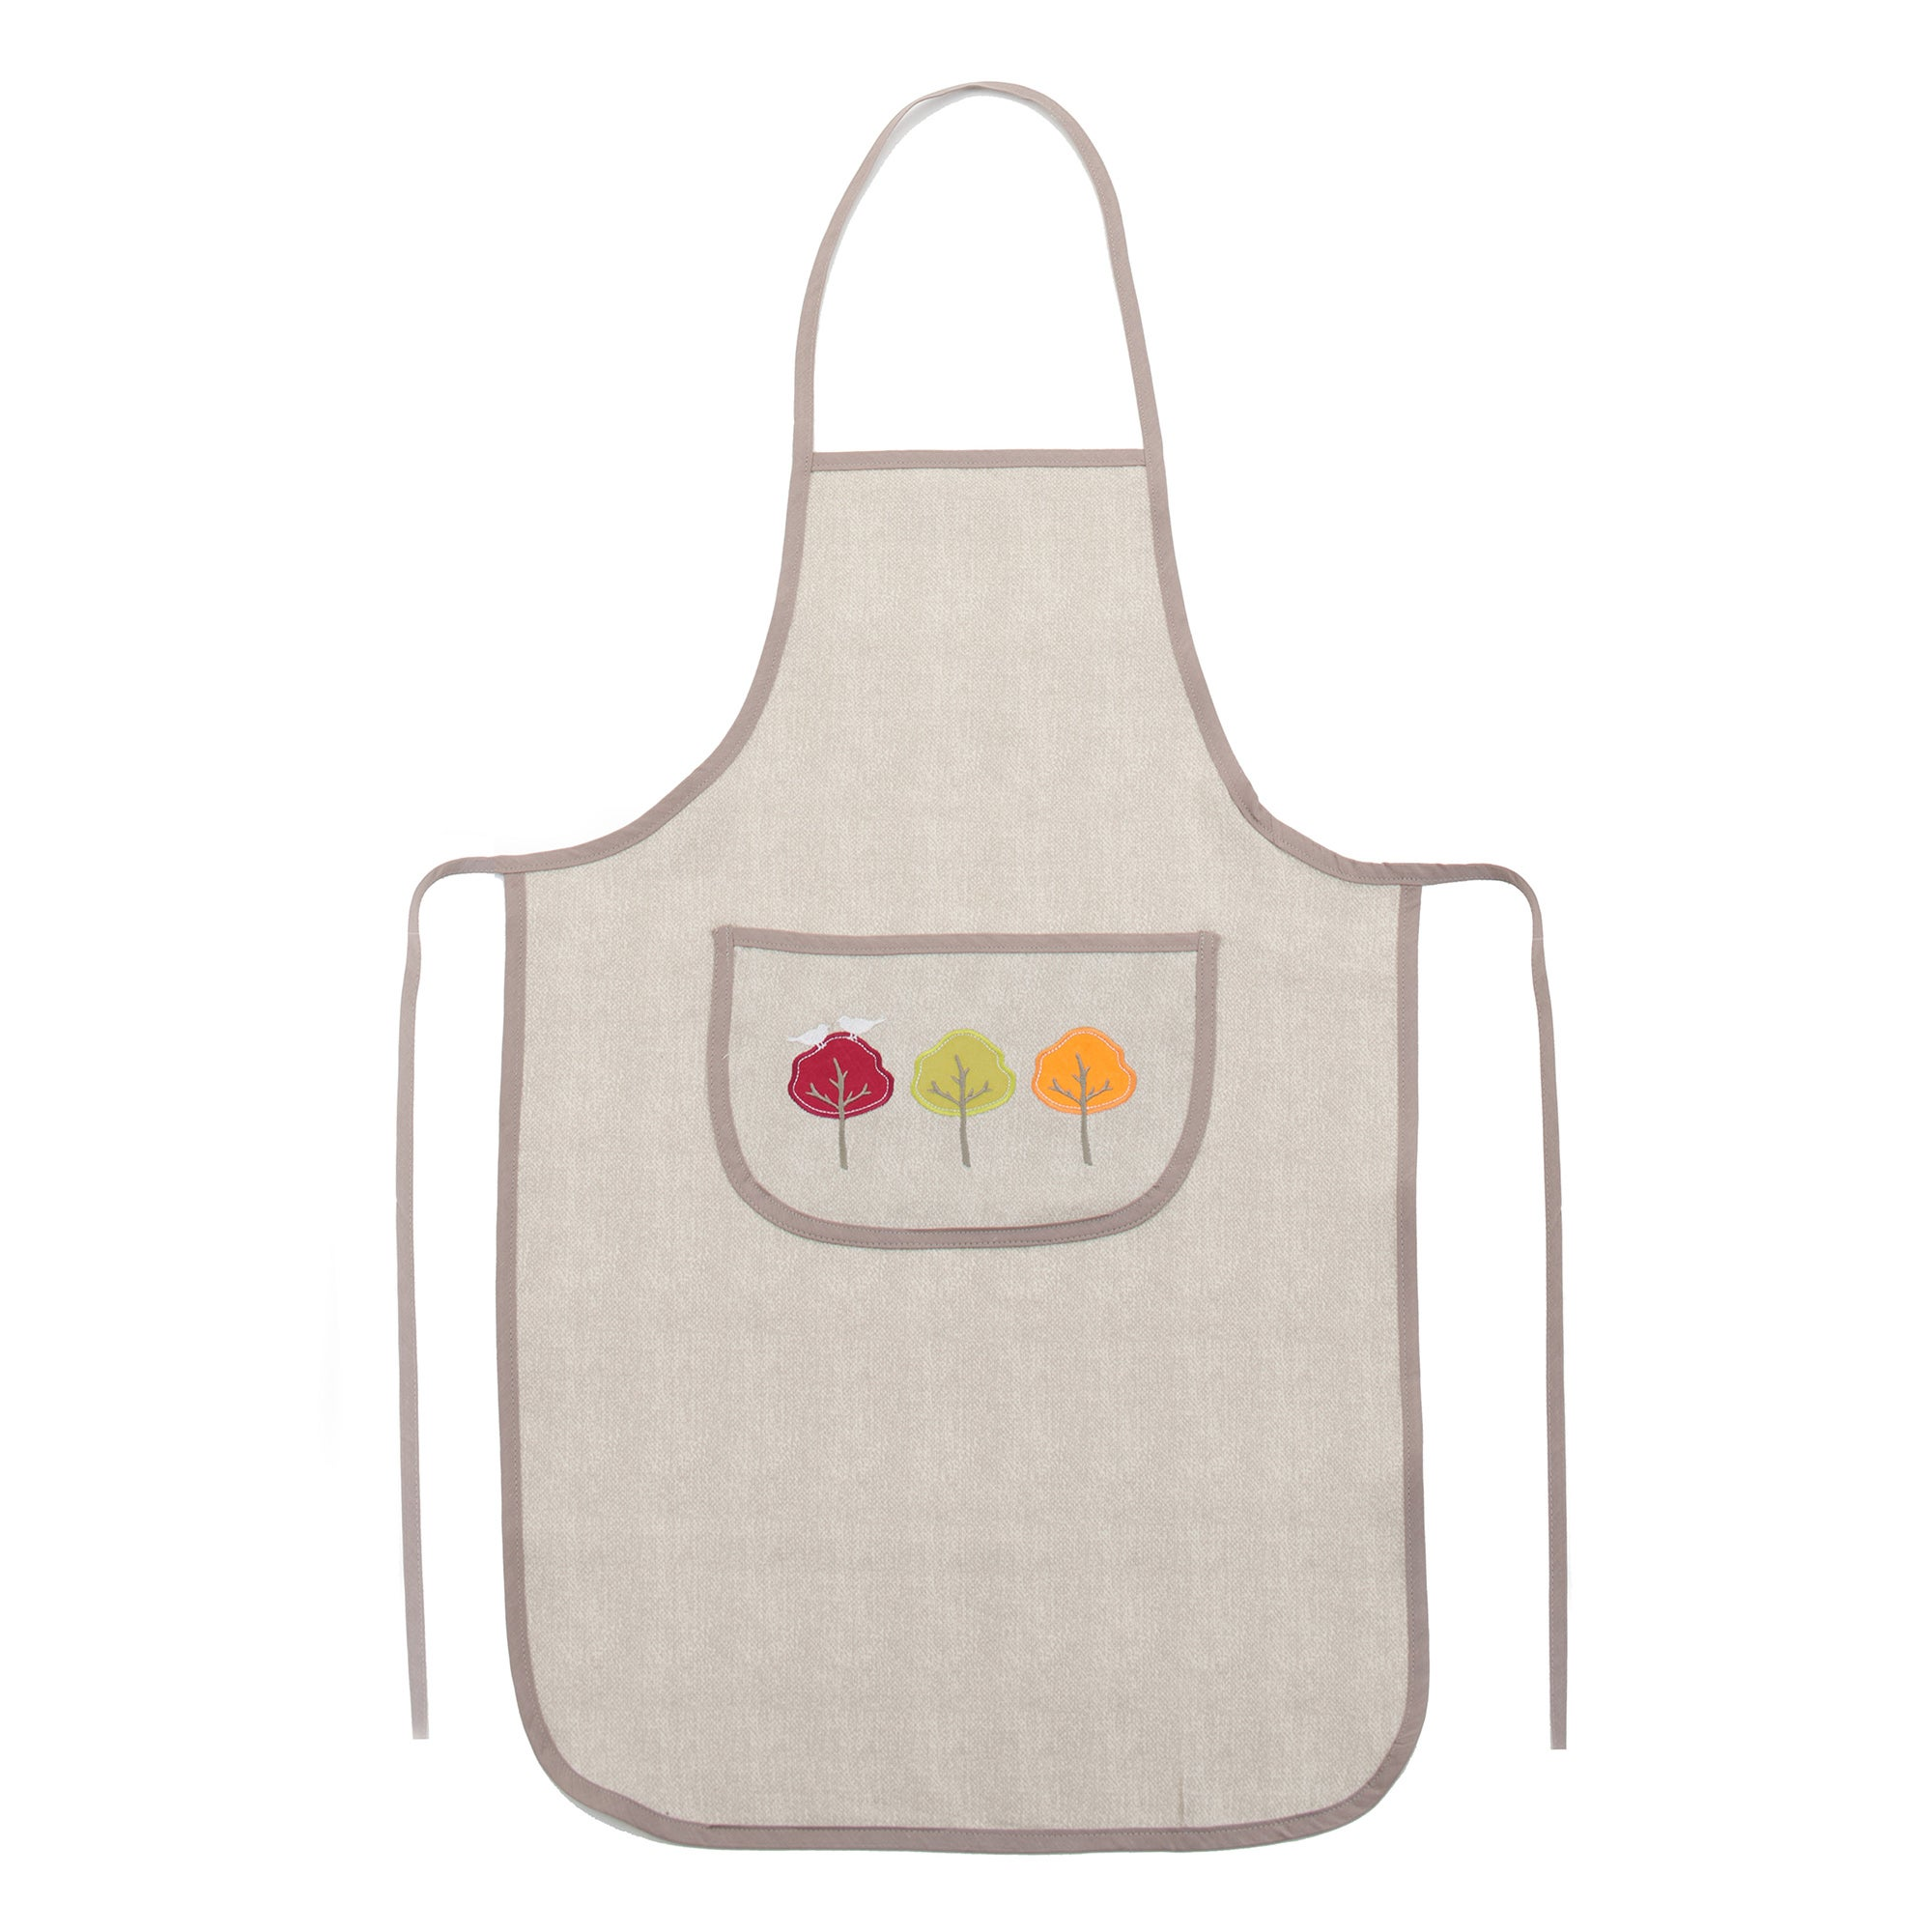 Home Sweet Home Collection Apron